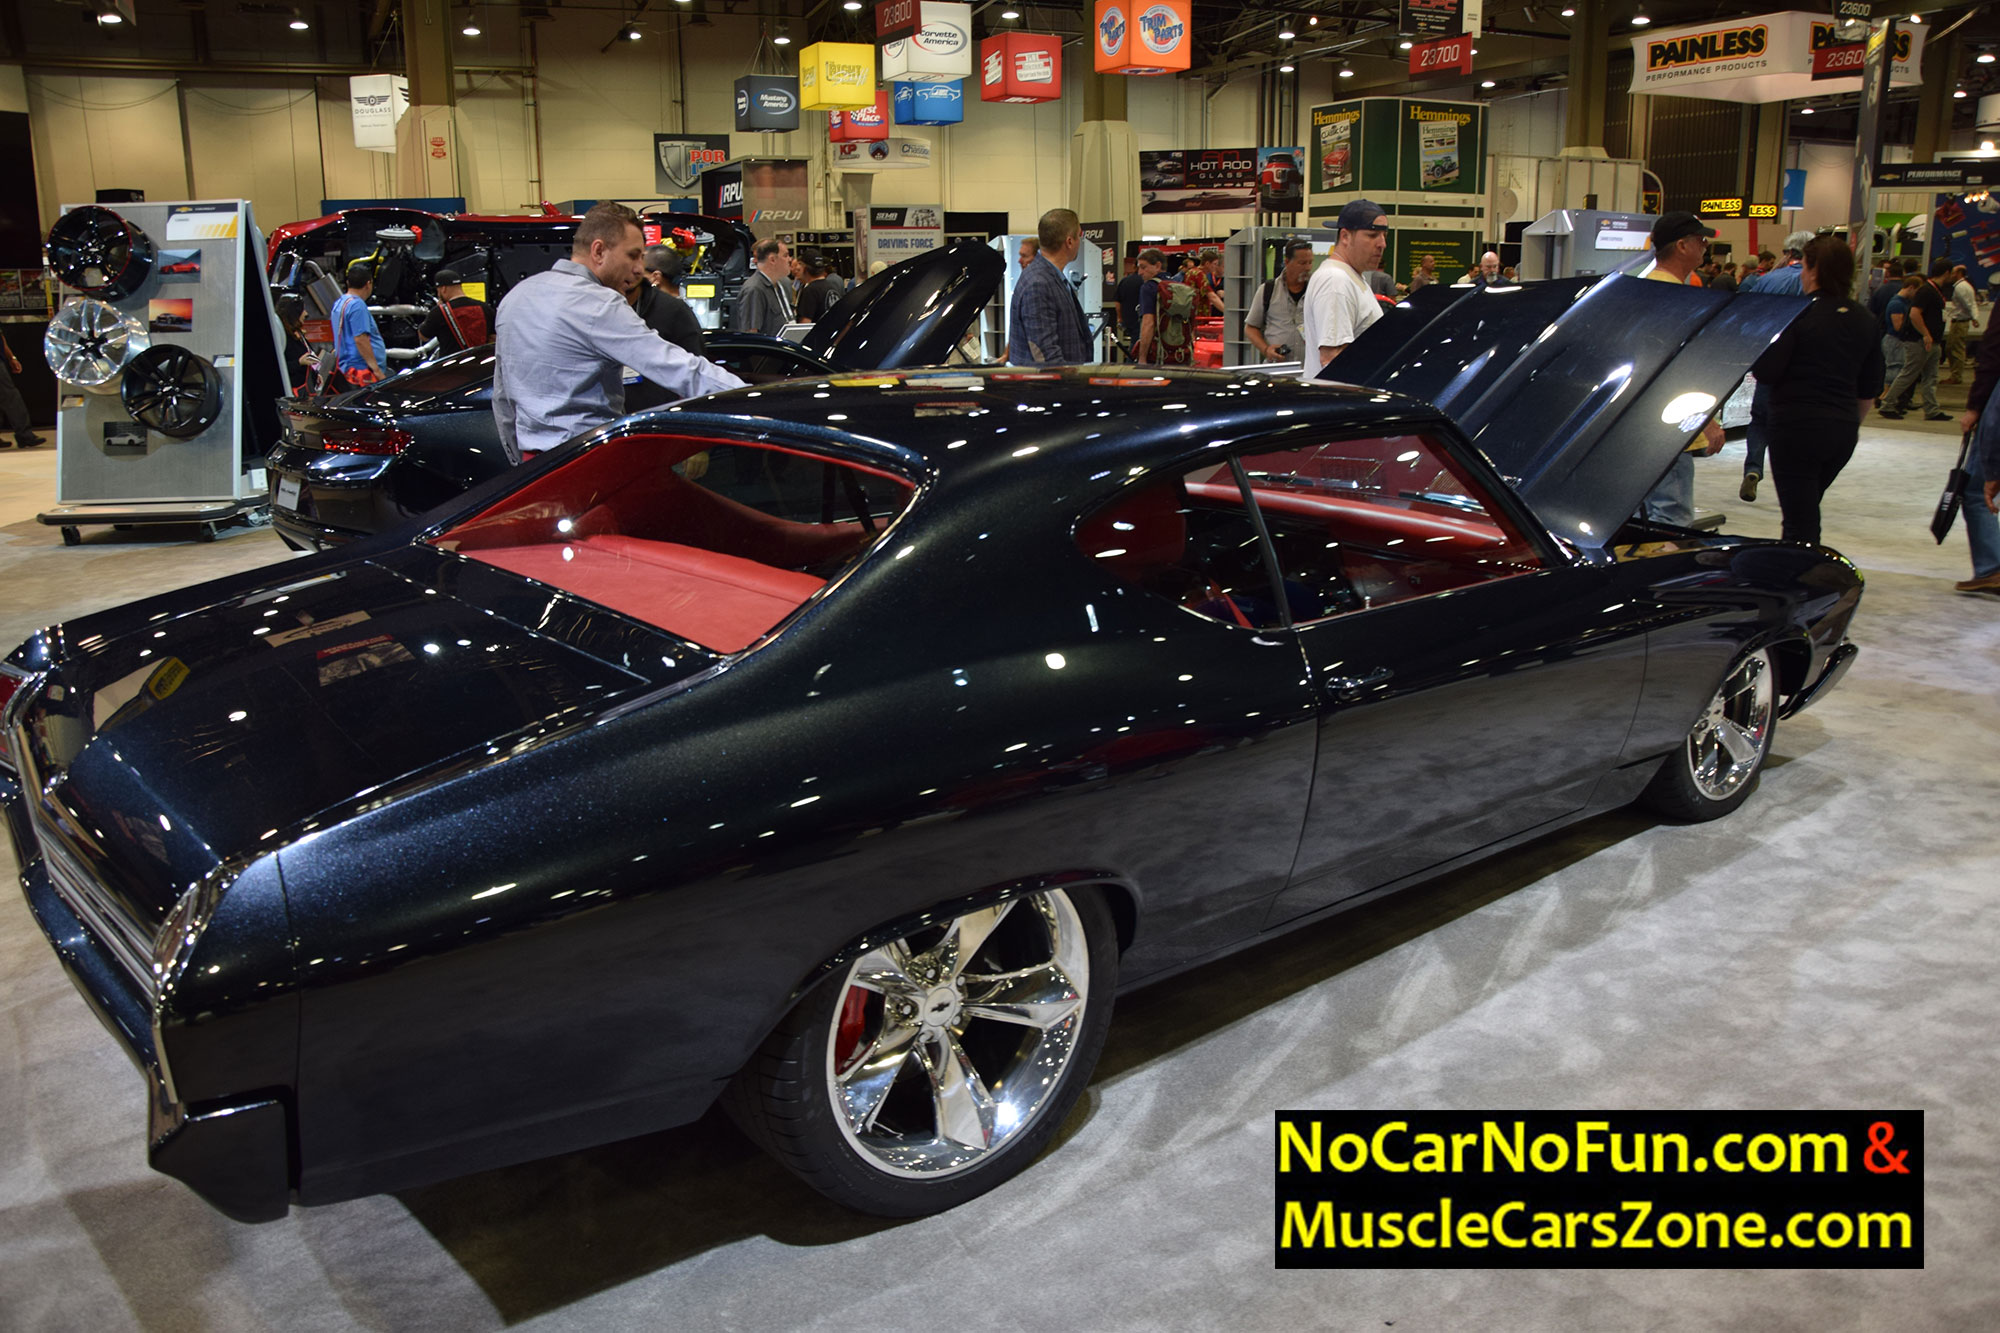 Musclecarszone.com Presents You The Very Best Rides Of The SEMA ...